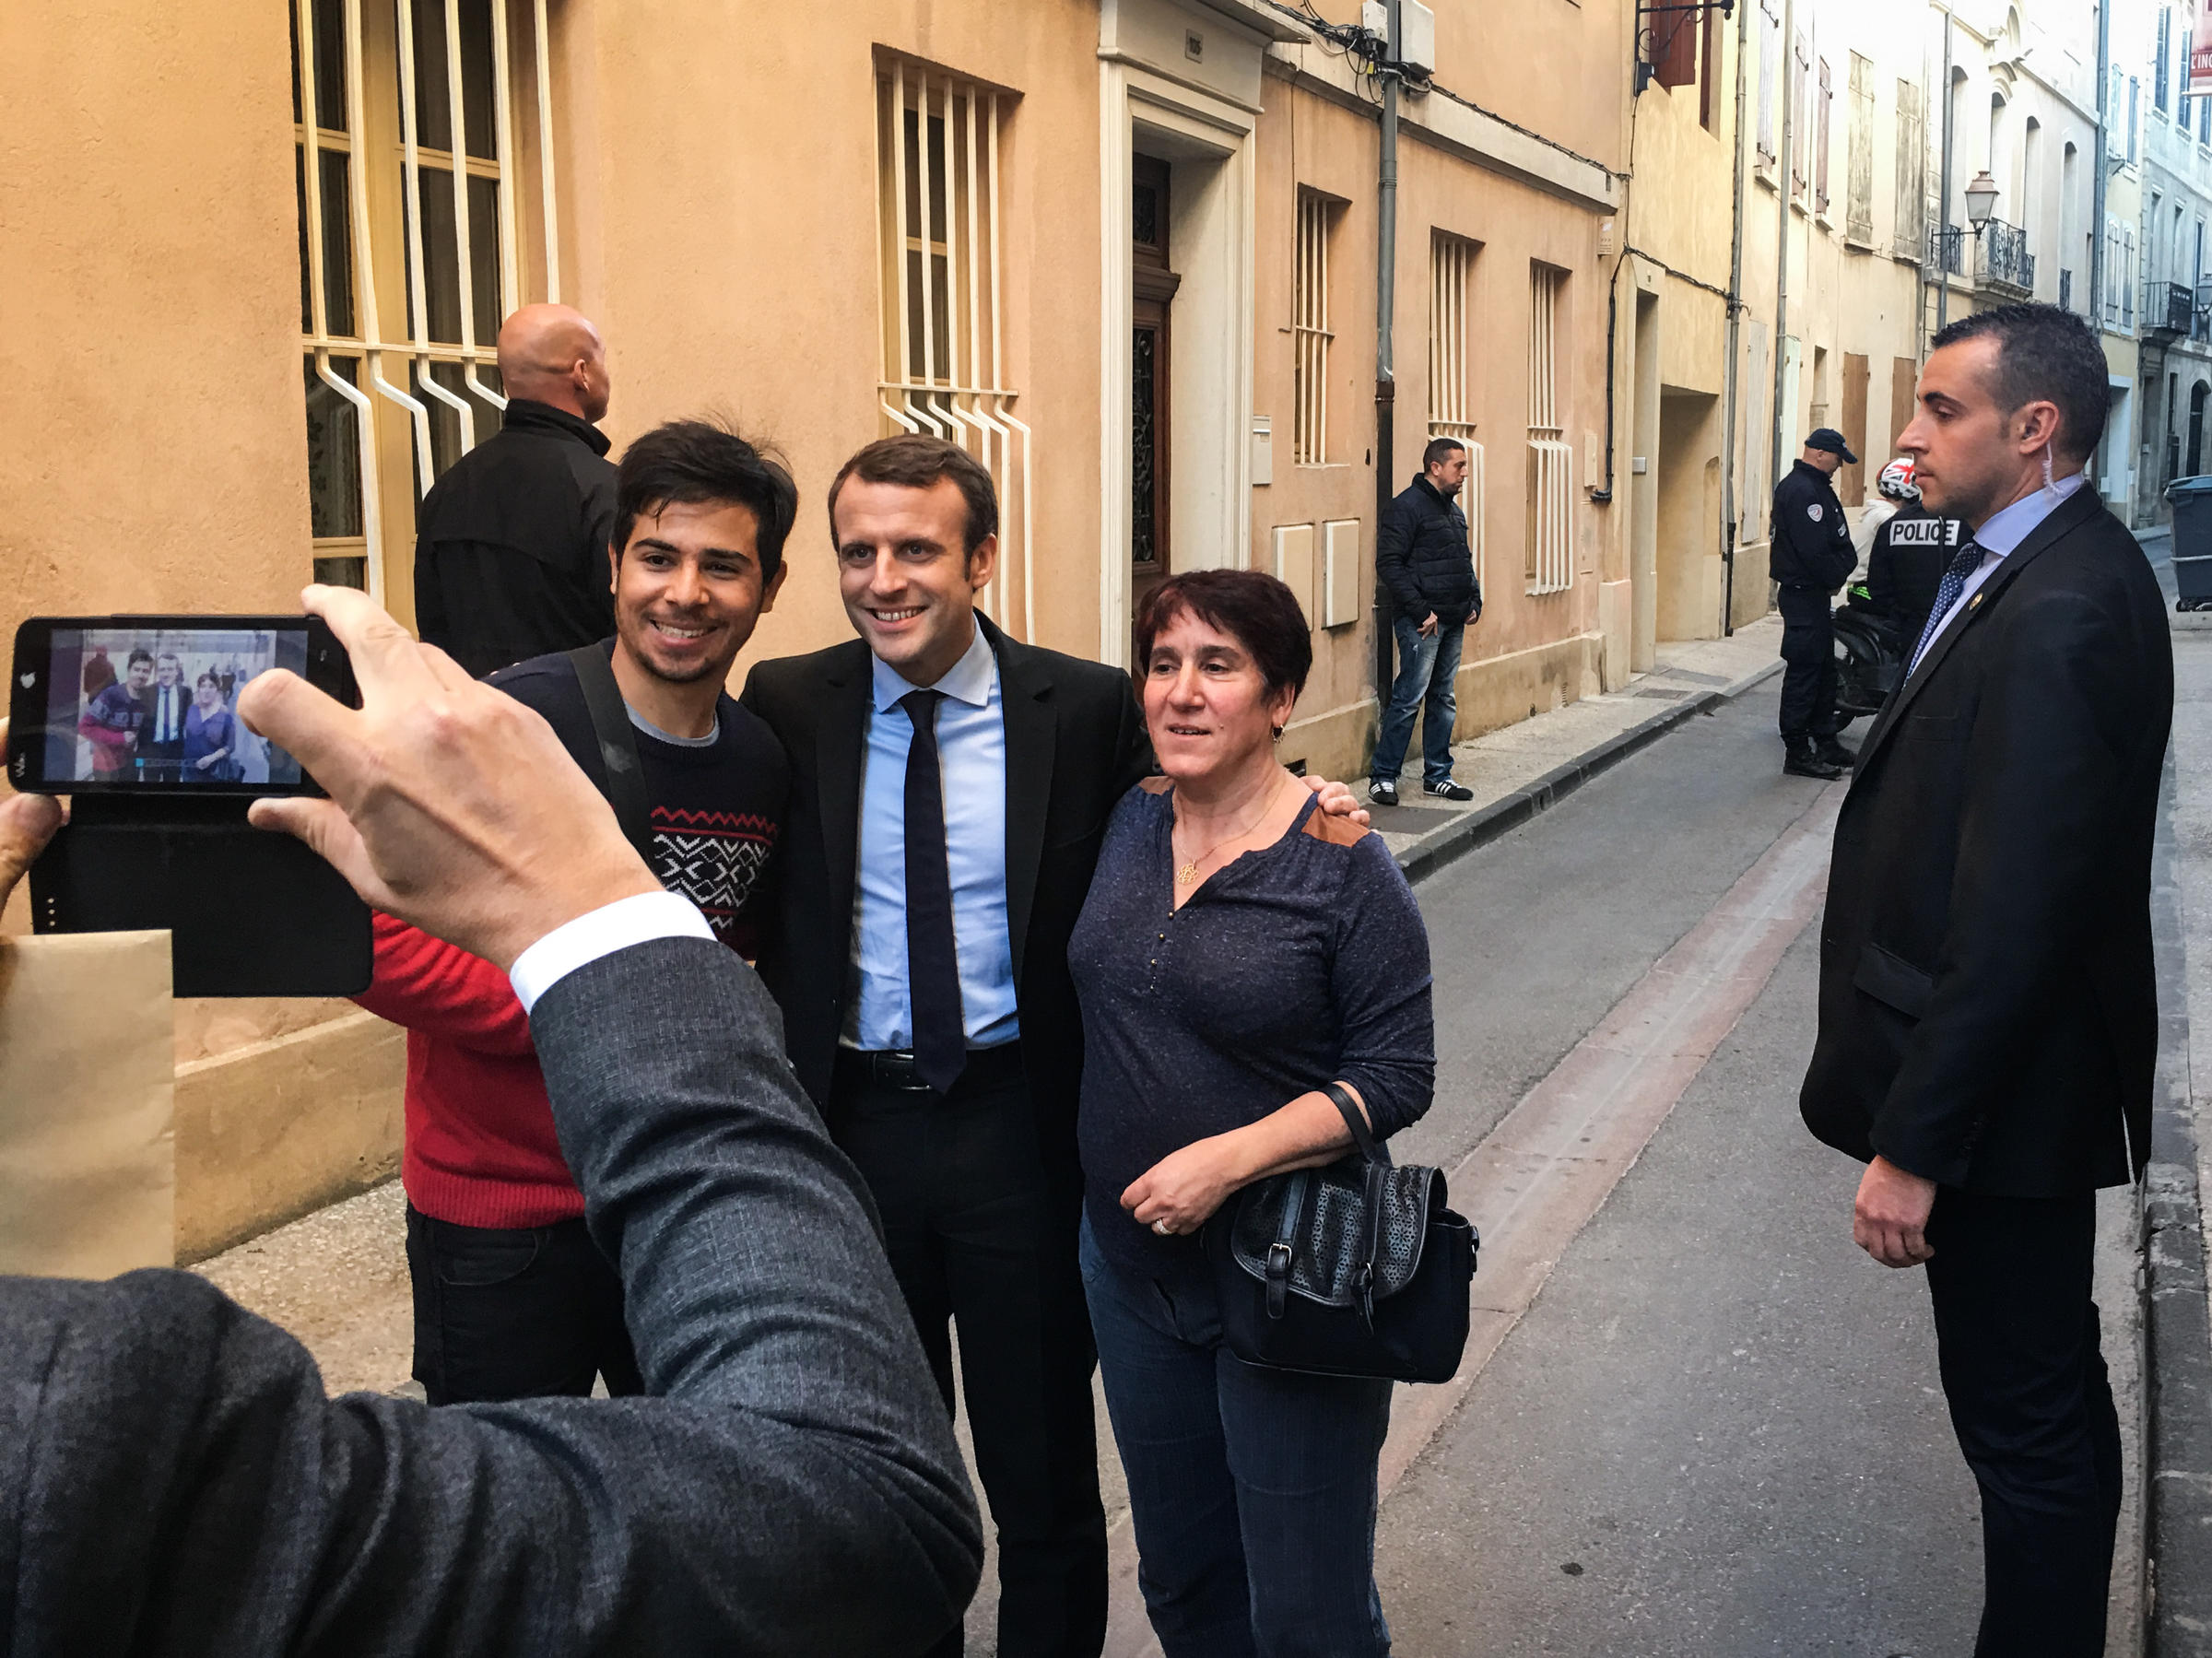 Political Outsider Emmanuel Macron Campaigns To Make France Daring Again New England Public Media